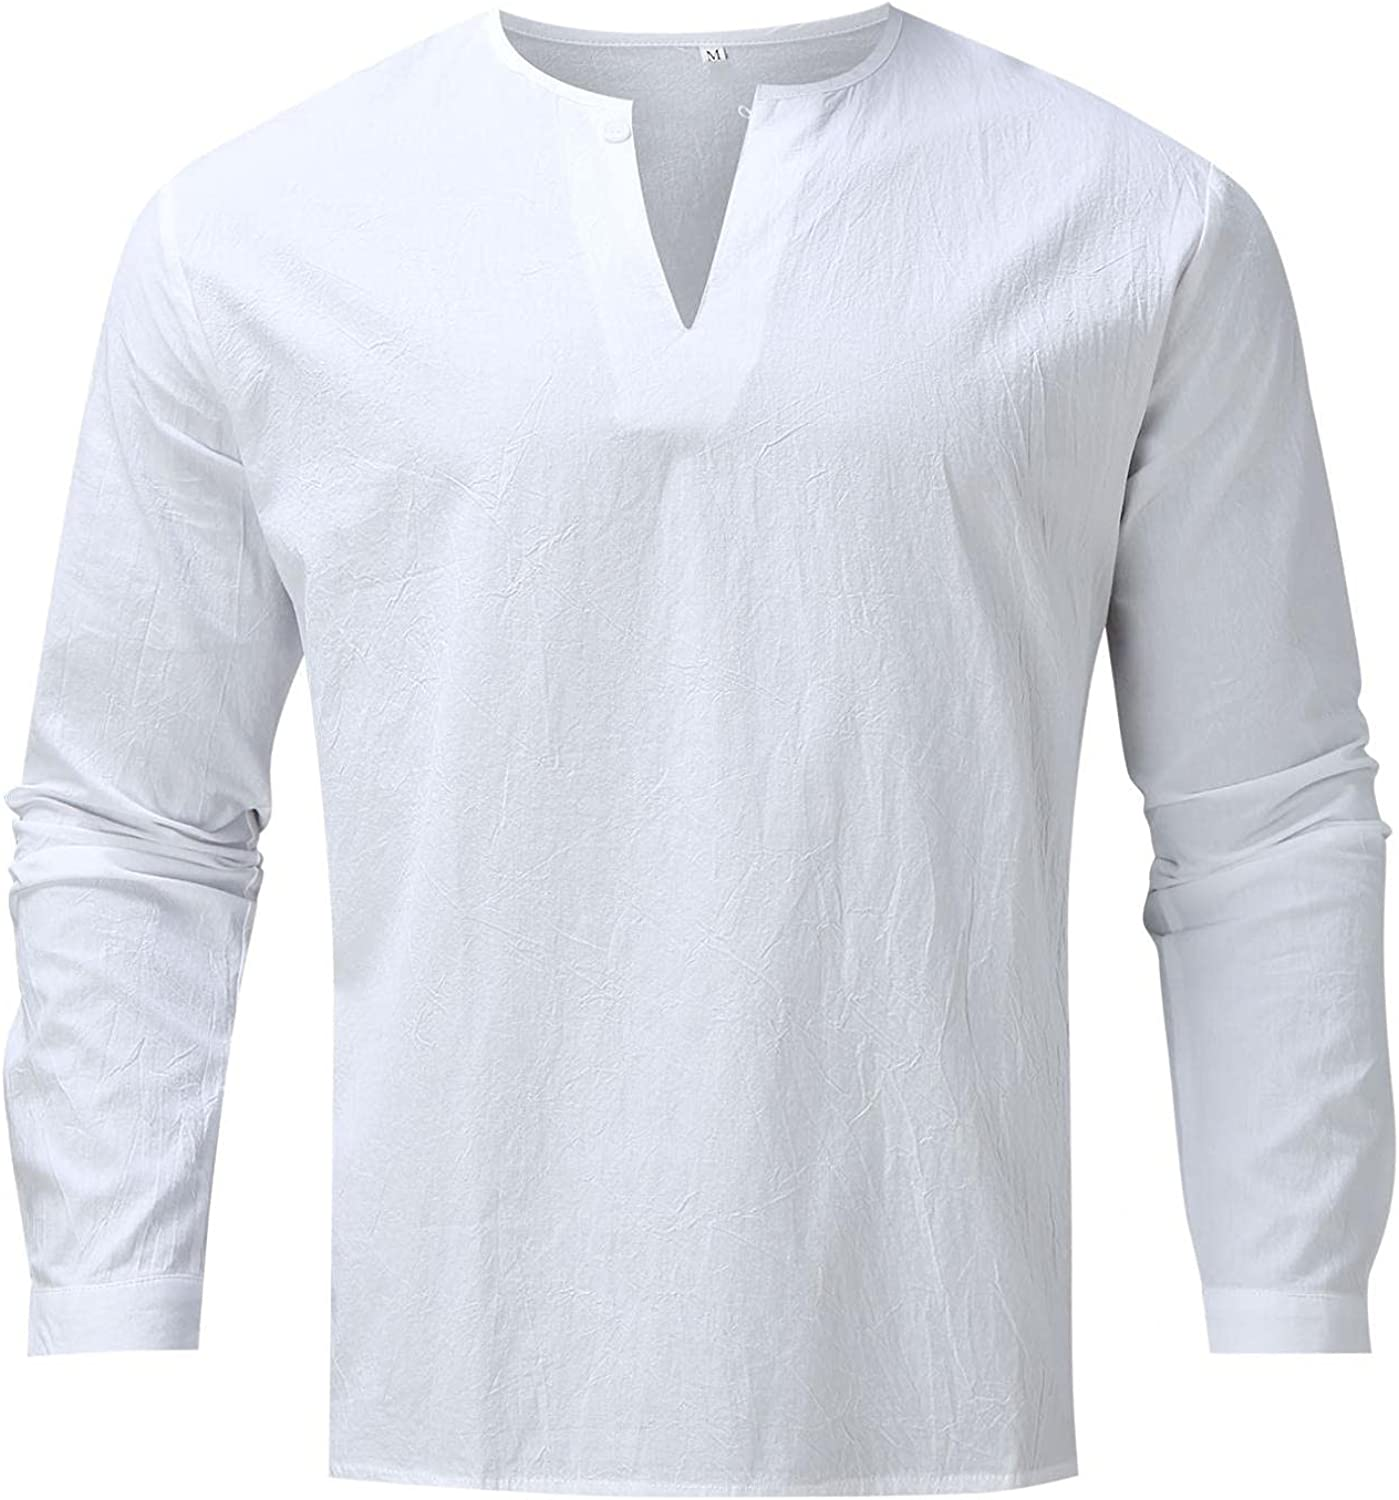 VEKDONE Men's Solid Color Cotton Linen Henley Shirt Long Sleeve V Neck Hippie Loose Fitting Casual Beach T Shirts